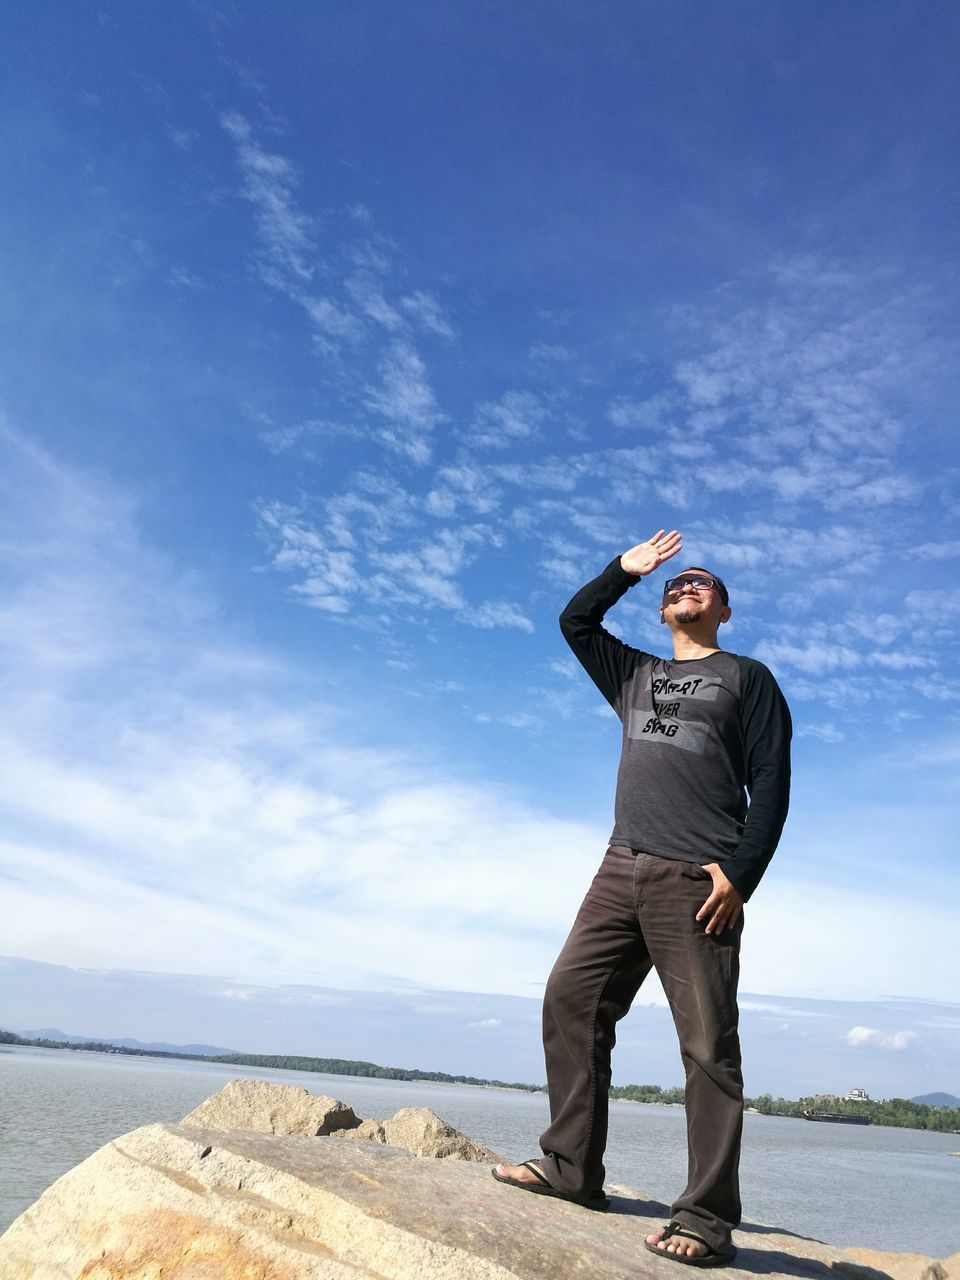 Full Length Of Man Standing On Rock By Lake Against Sky